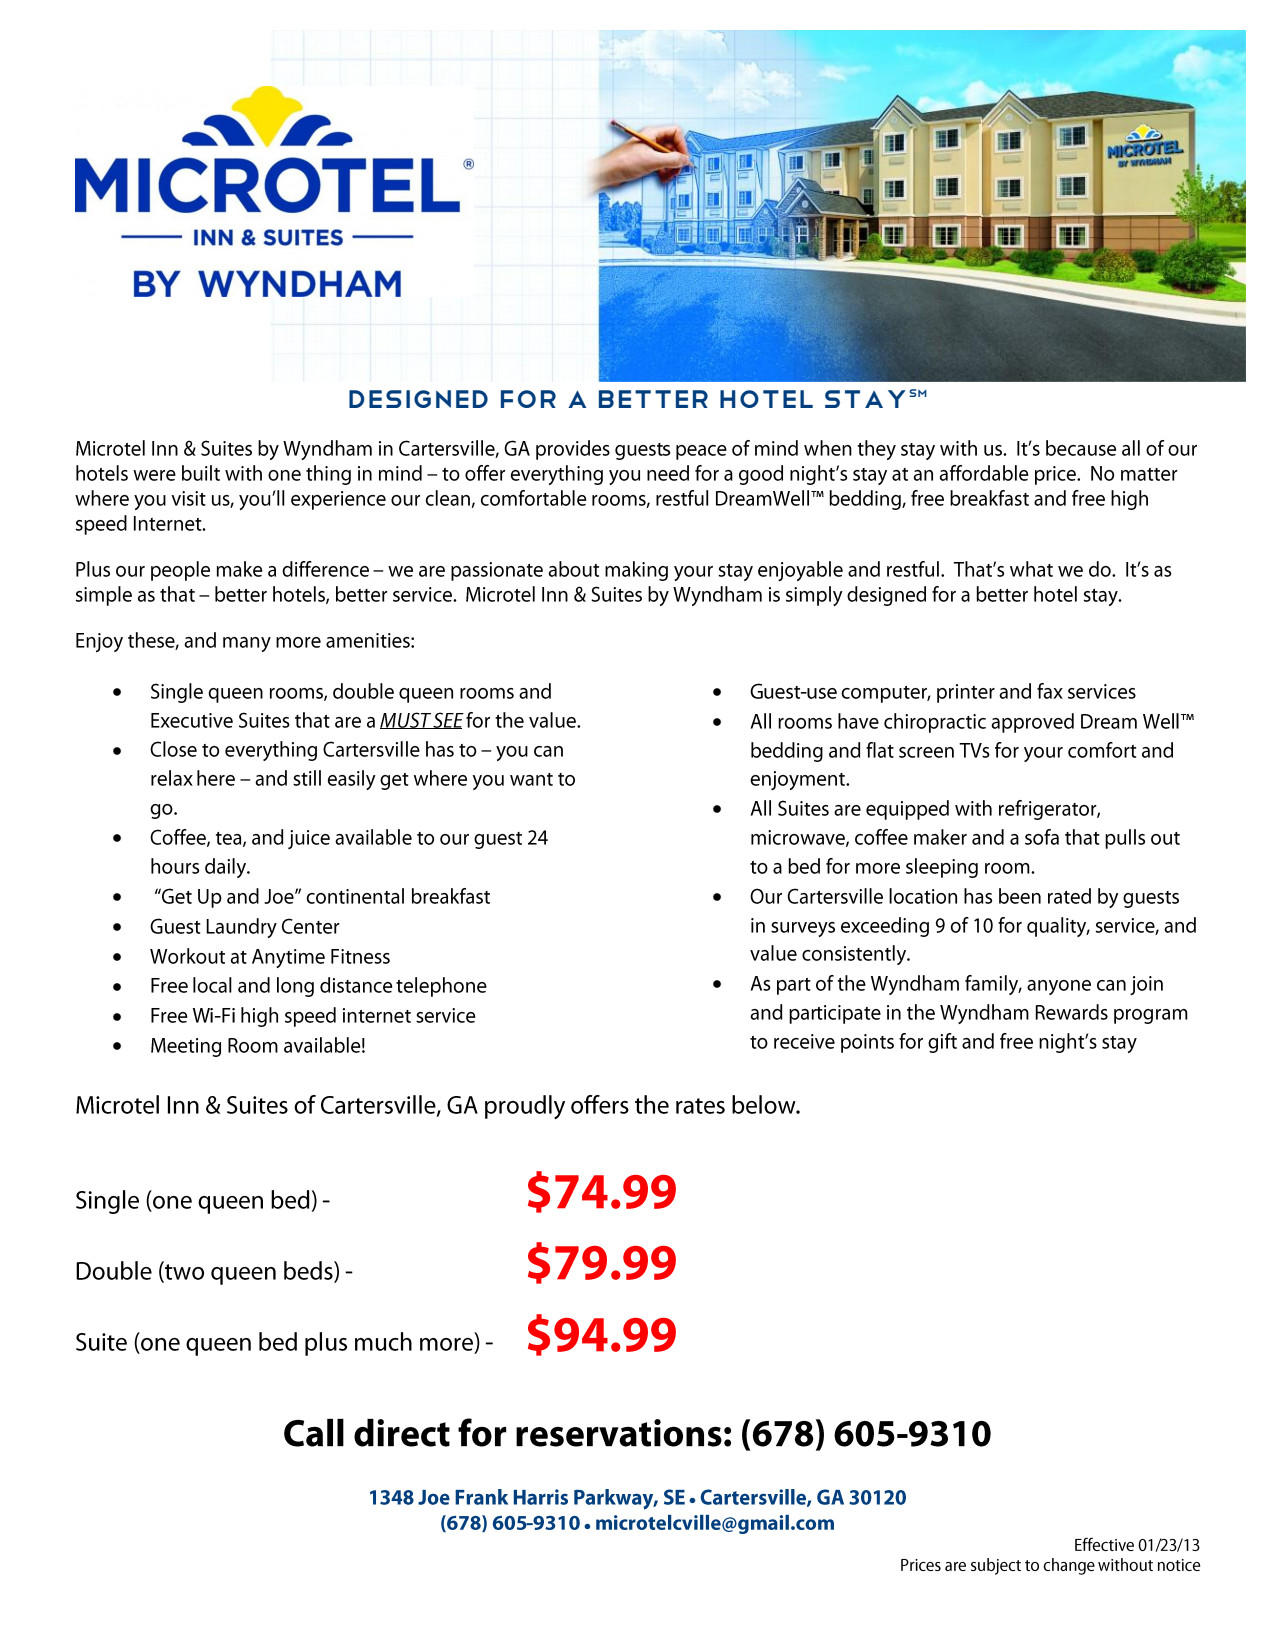 Microtel Inn & Suites by Wyndham - Cartersville